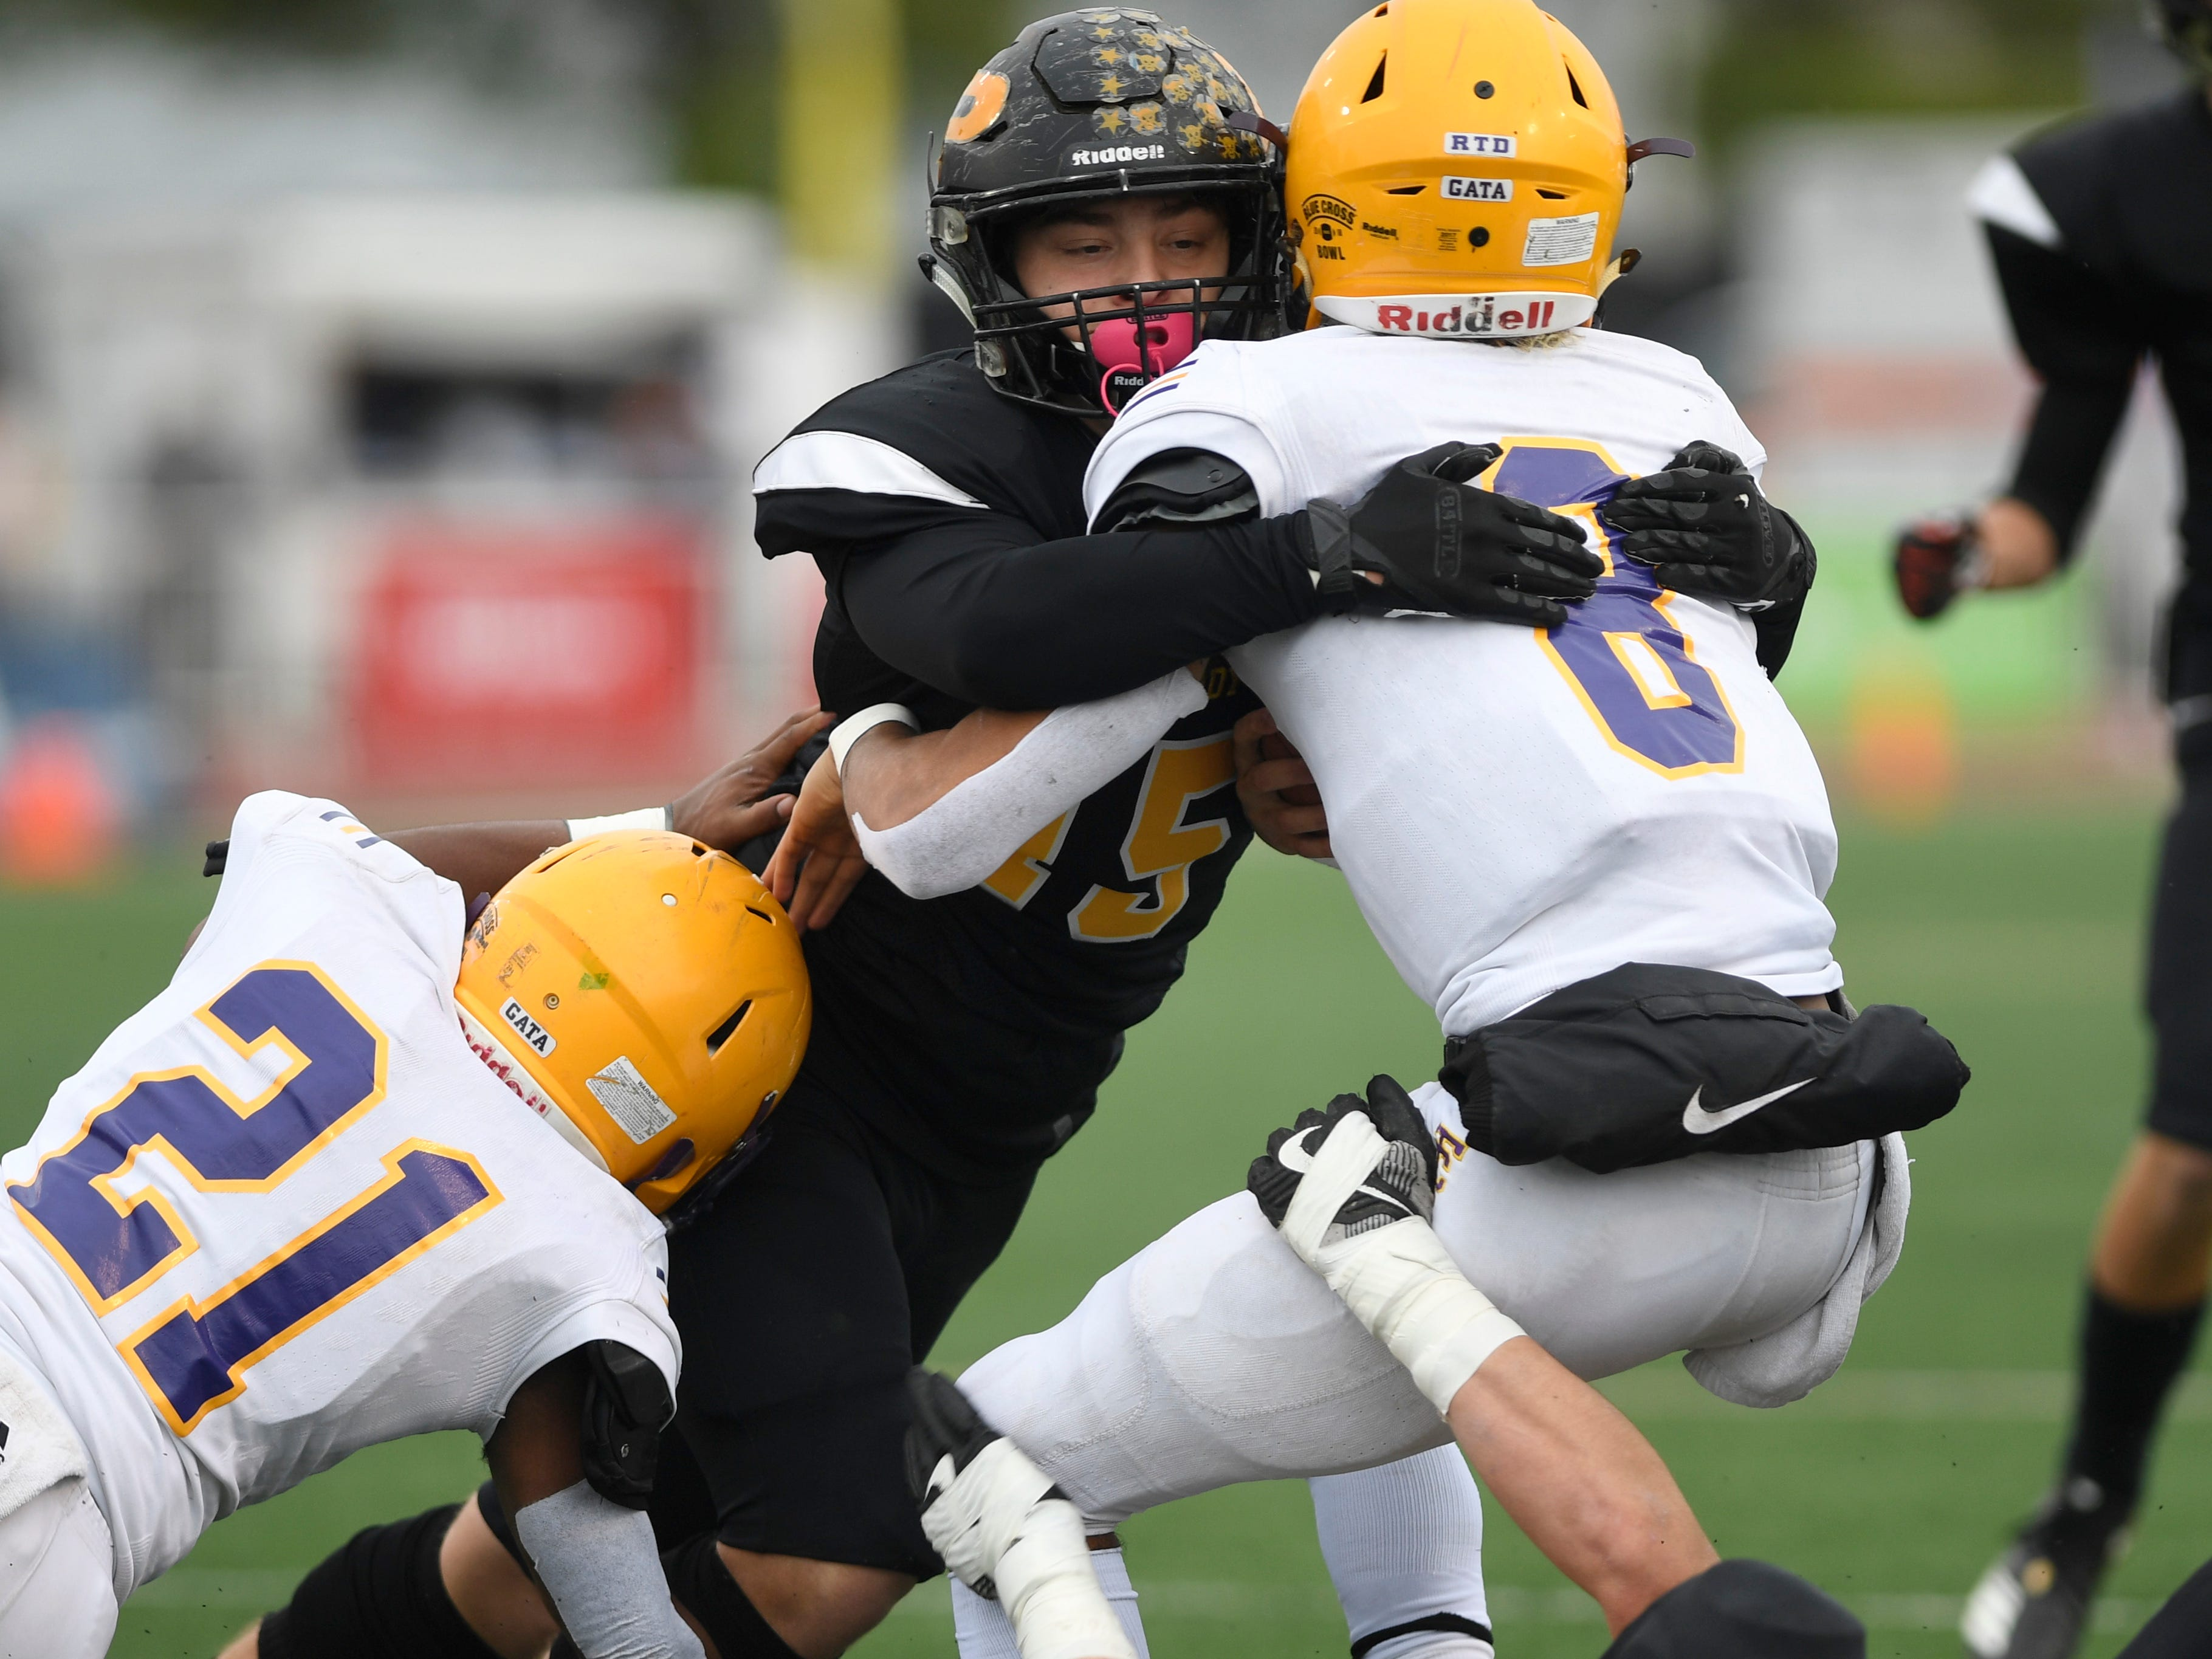 Peabody linebacker Jaime Hernandez stuffs Trousdale County quarterback Keyvont Baines in the first quarter during the Class 2A BlueCross Bowl state championship at Tennessee Tech's Tucker Stadium in Cookeville, Tenn., on Thursday, Nov. 29, 2018.